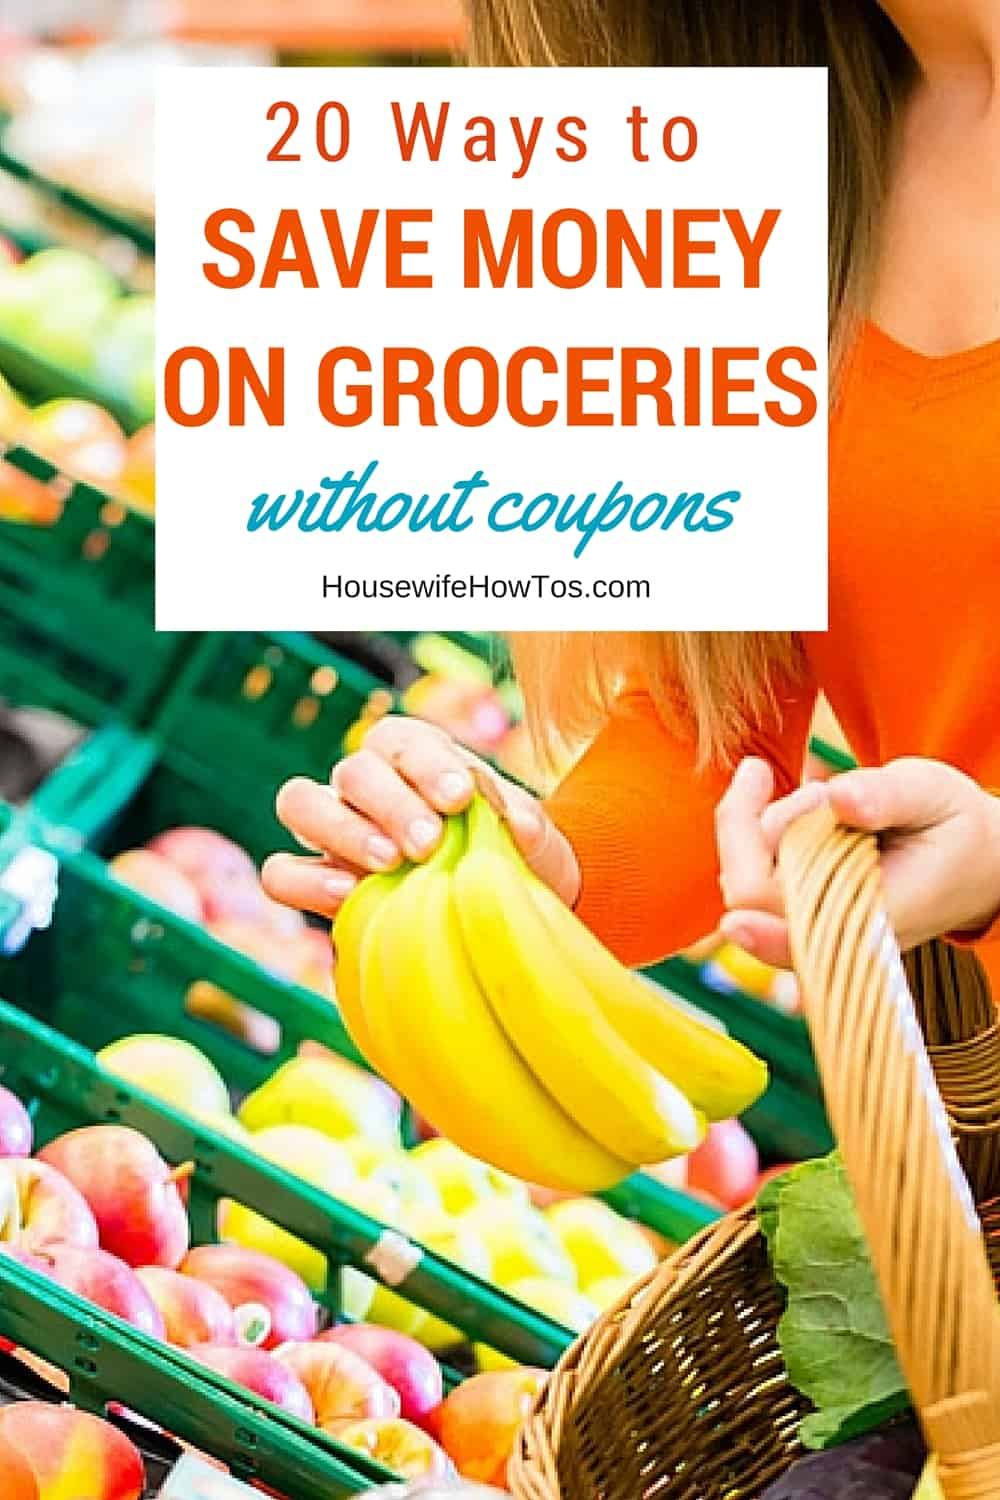 Pin Save Money on Groceries Without Coupons